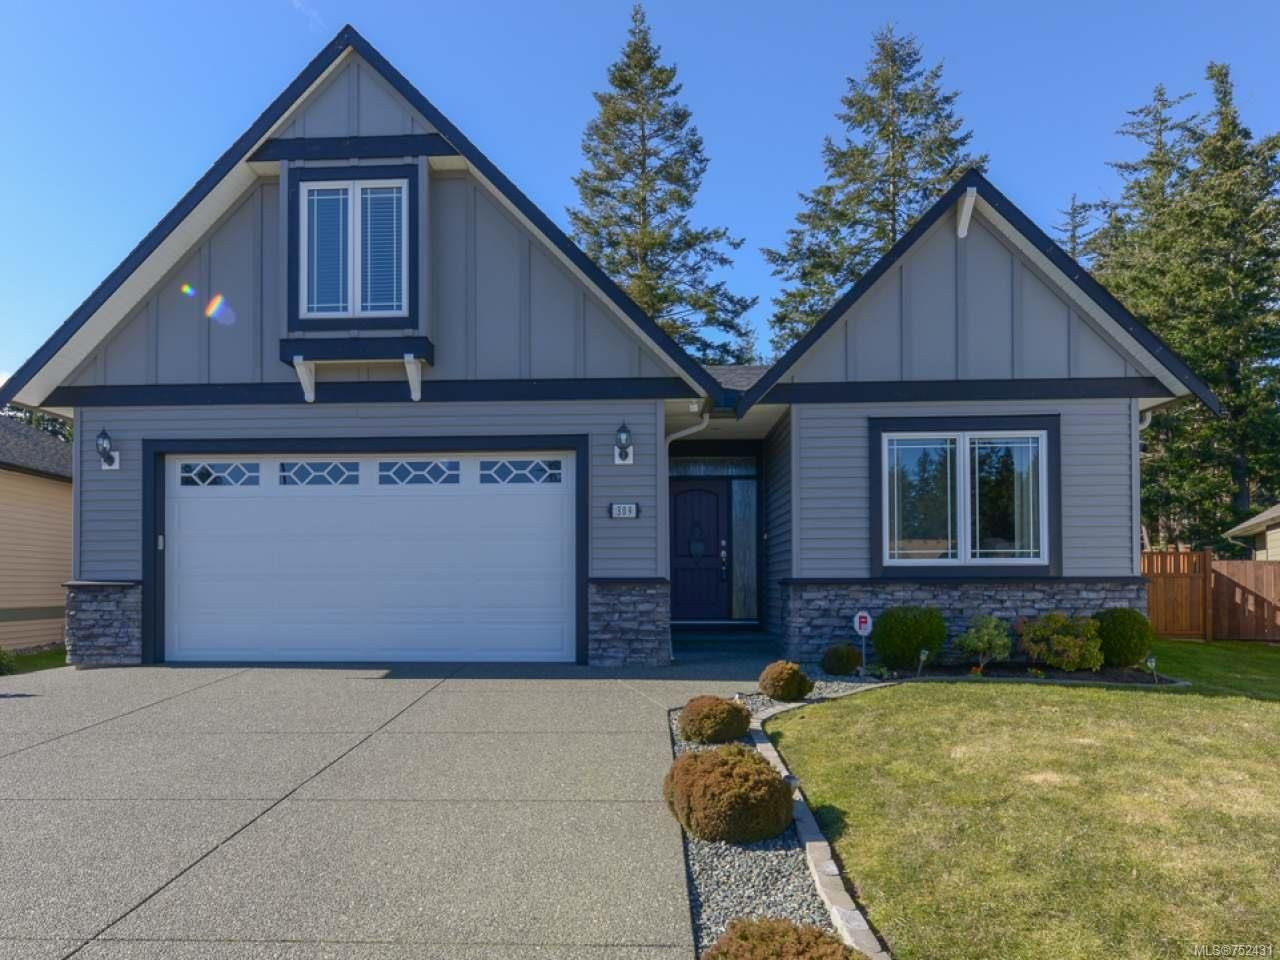 Main Photo: 309 FORESTER Avenue in COMOX: CV Comox (Town of) House for sale (Comox Valley)  : MLS®# 752431